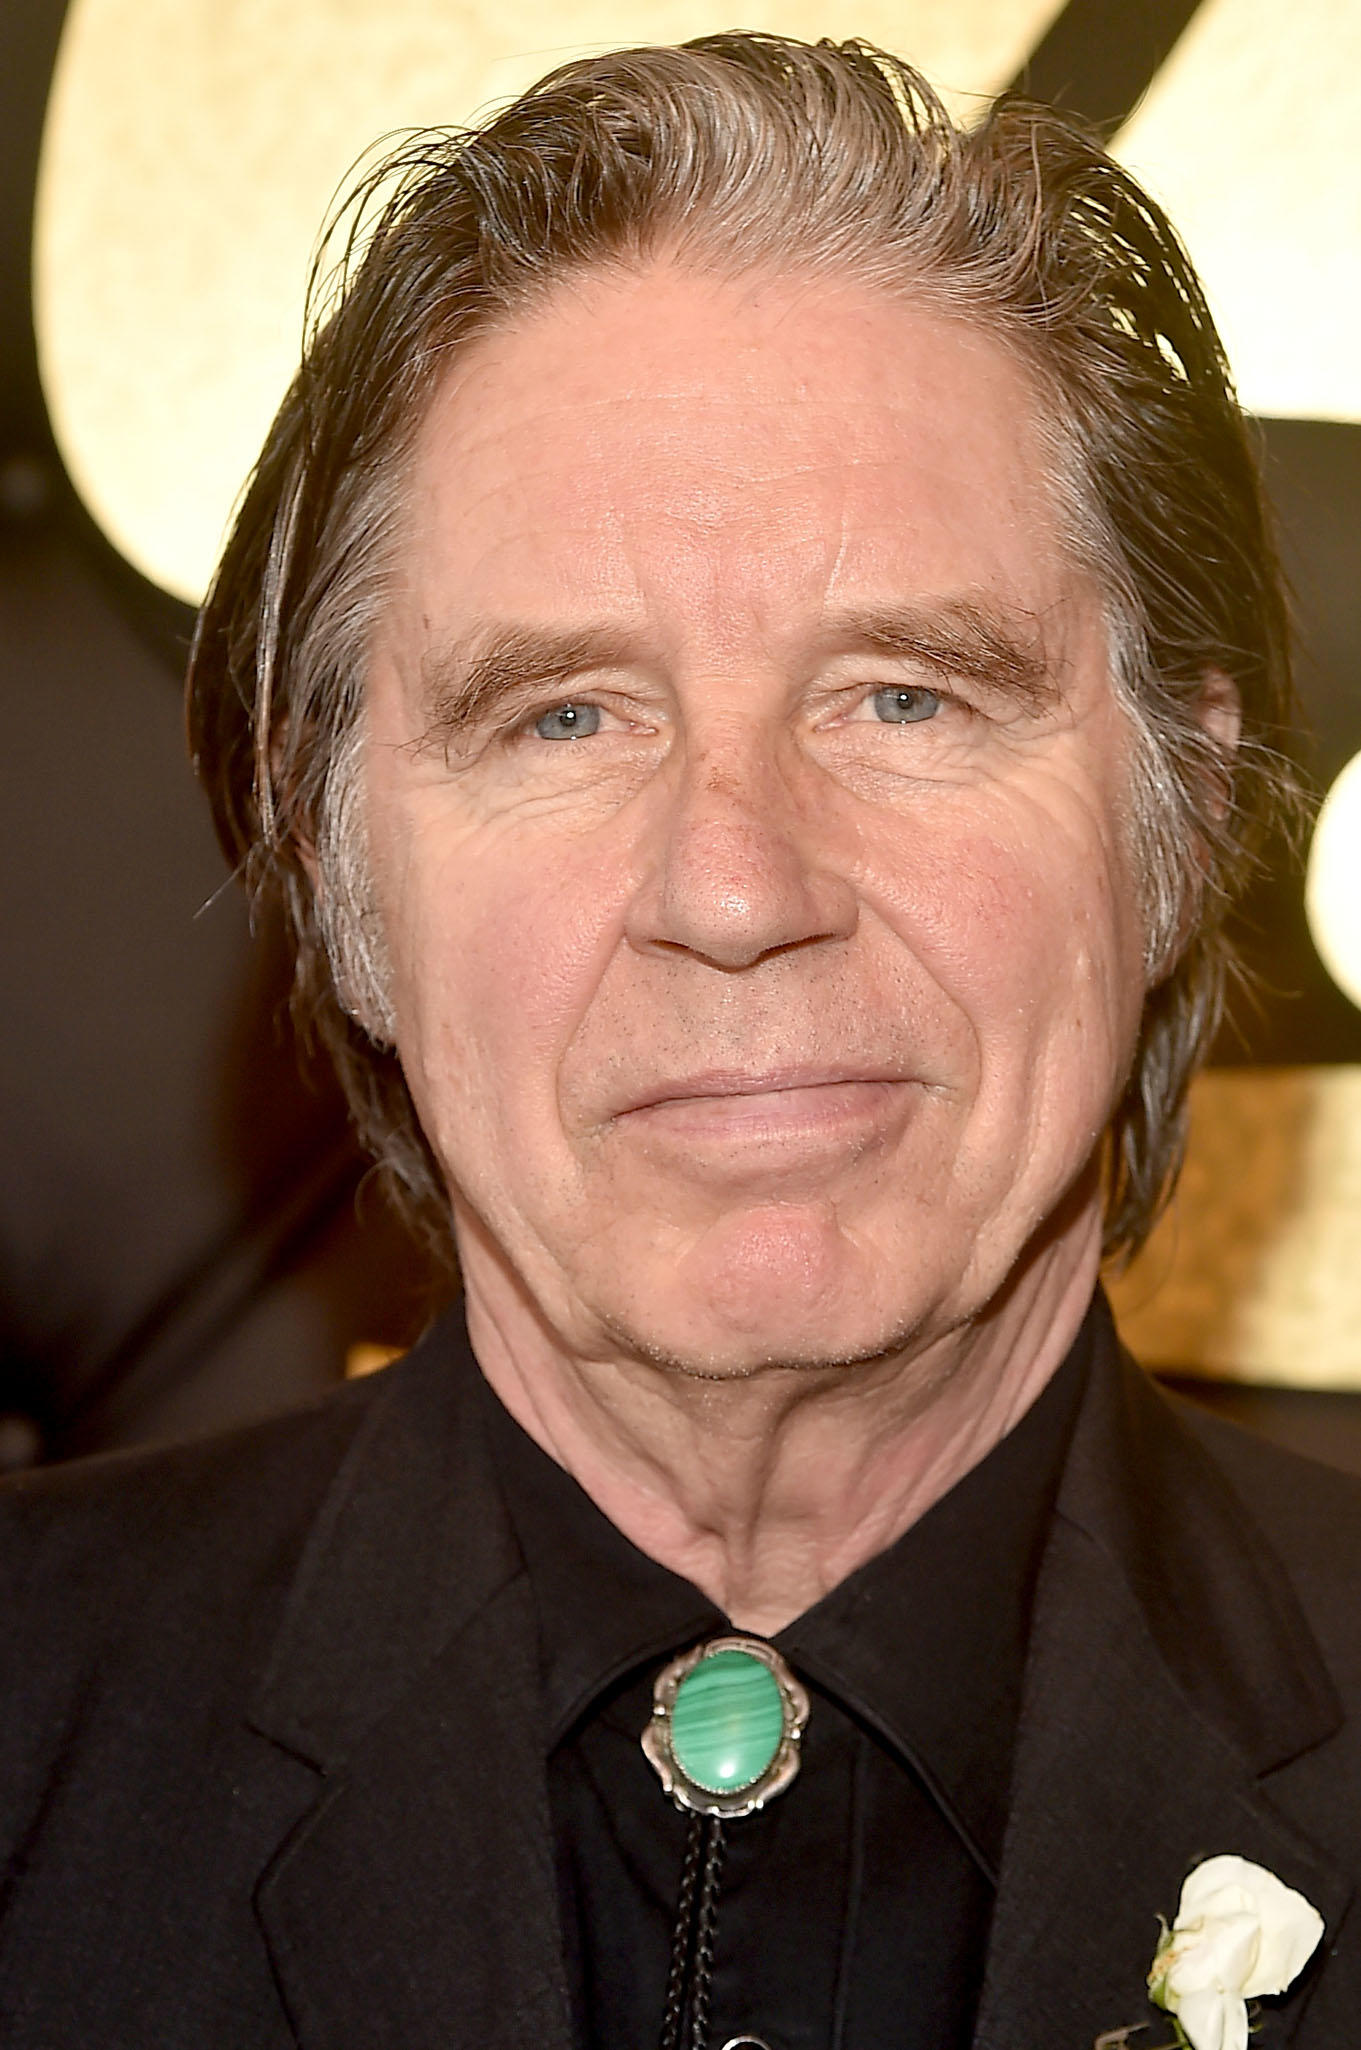 John Doe at the 59th Grammy Awards in Los Angeles.